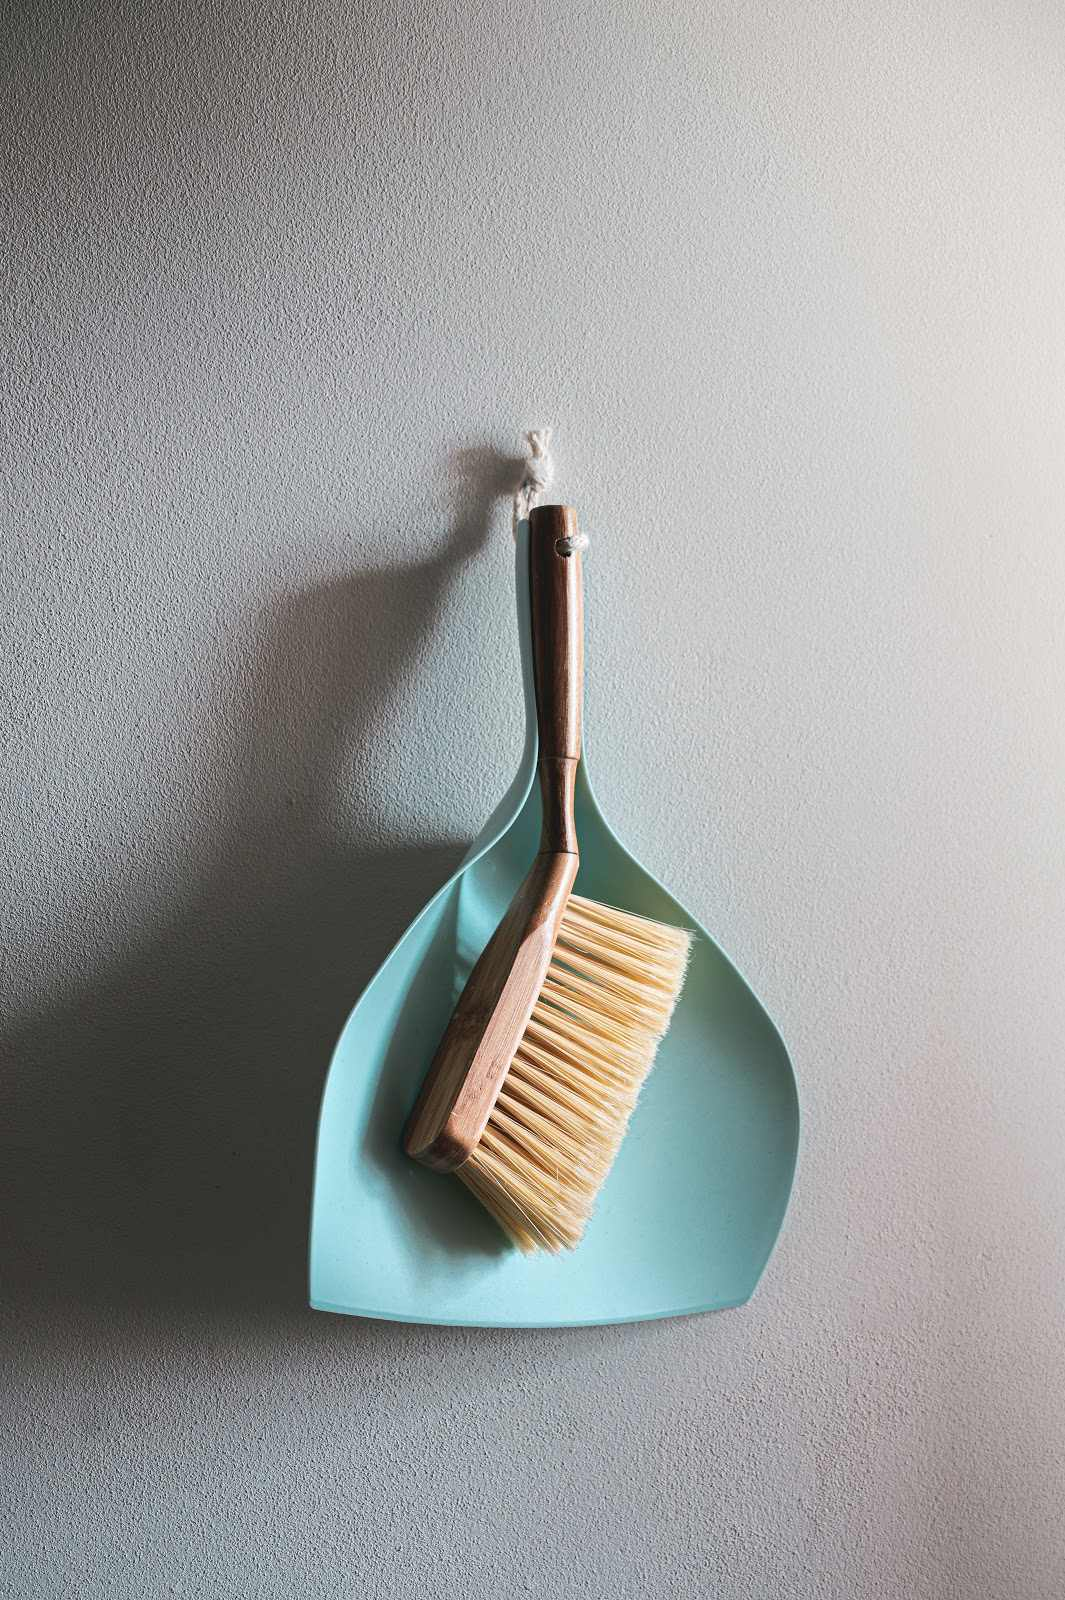 Small wooden hand broom and light blue dustpan hanging on a white wall.